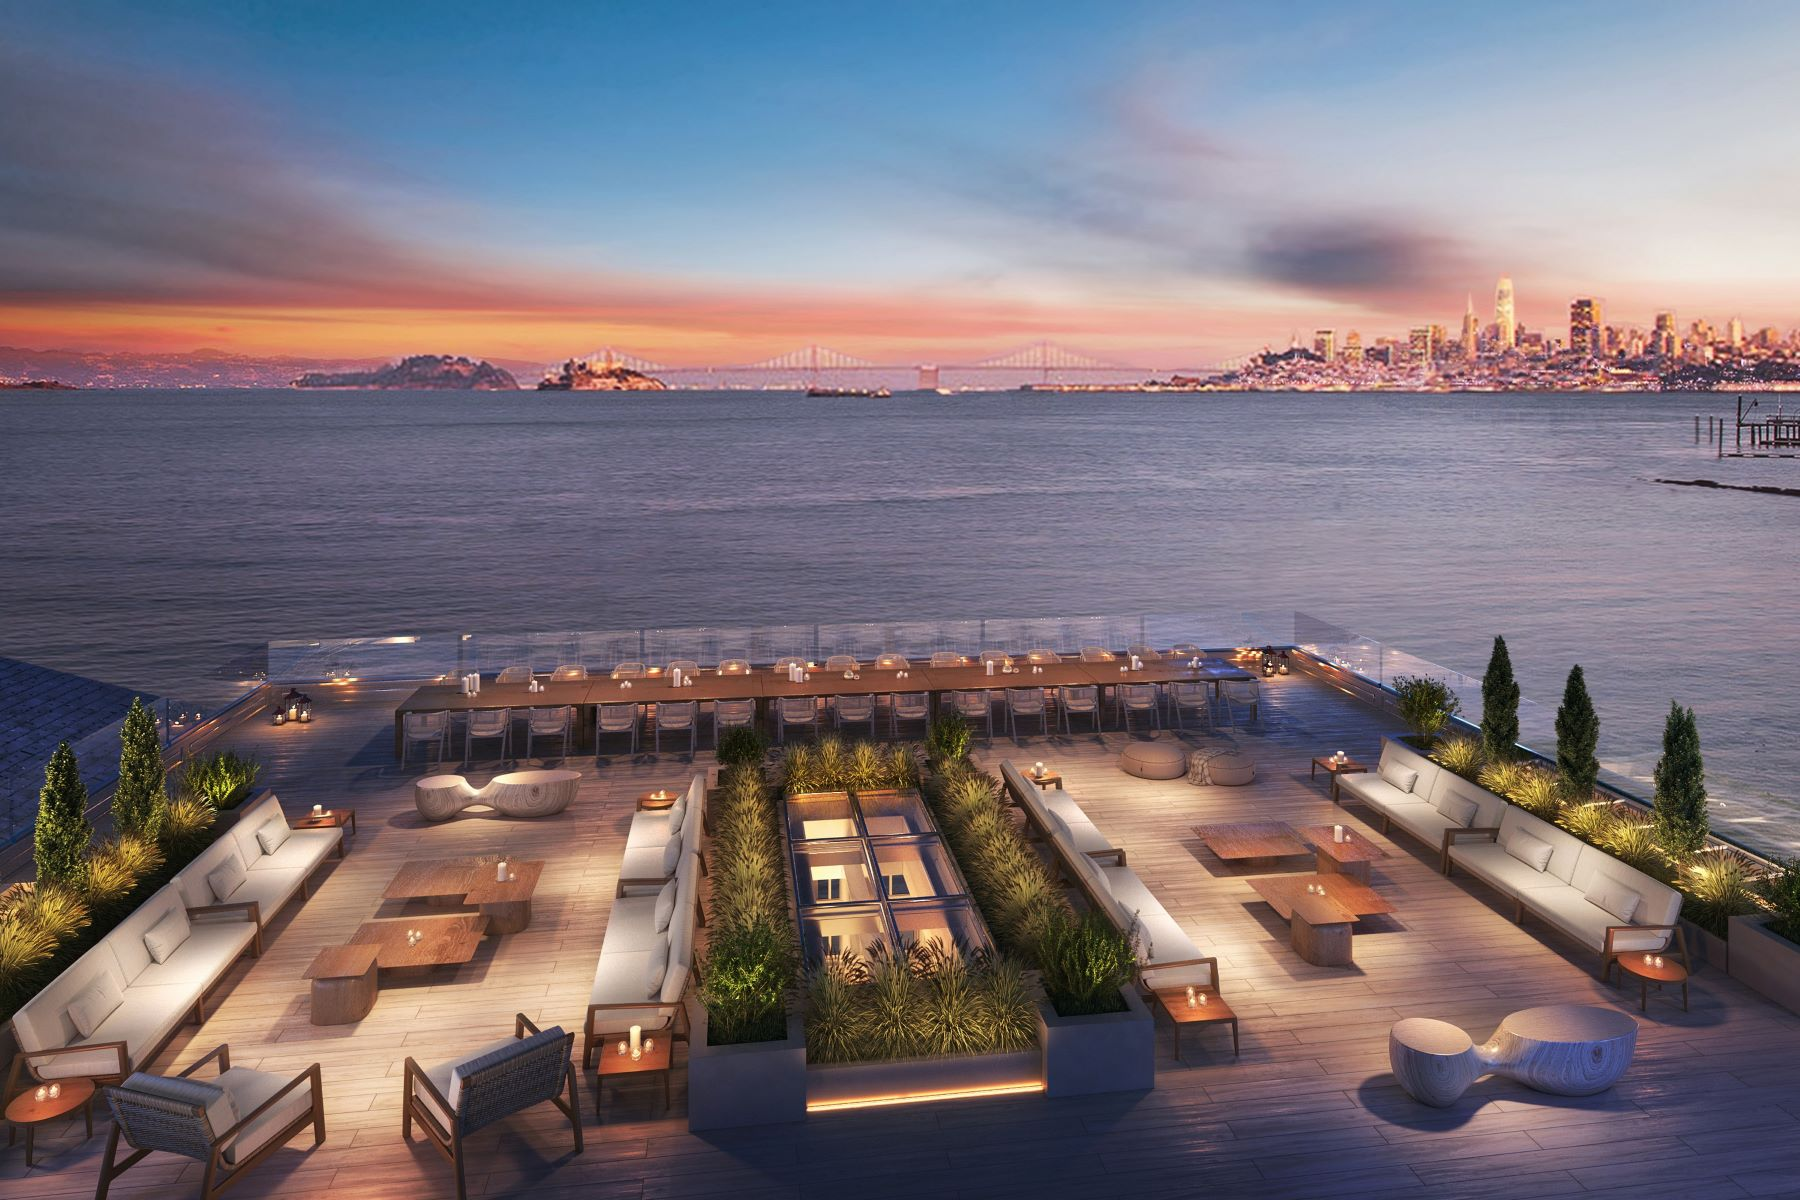 Single Family Homes for Active at Sausalito Waterfront Compound 201 Bridgeway Sausalito, California 94965 United States